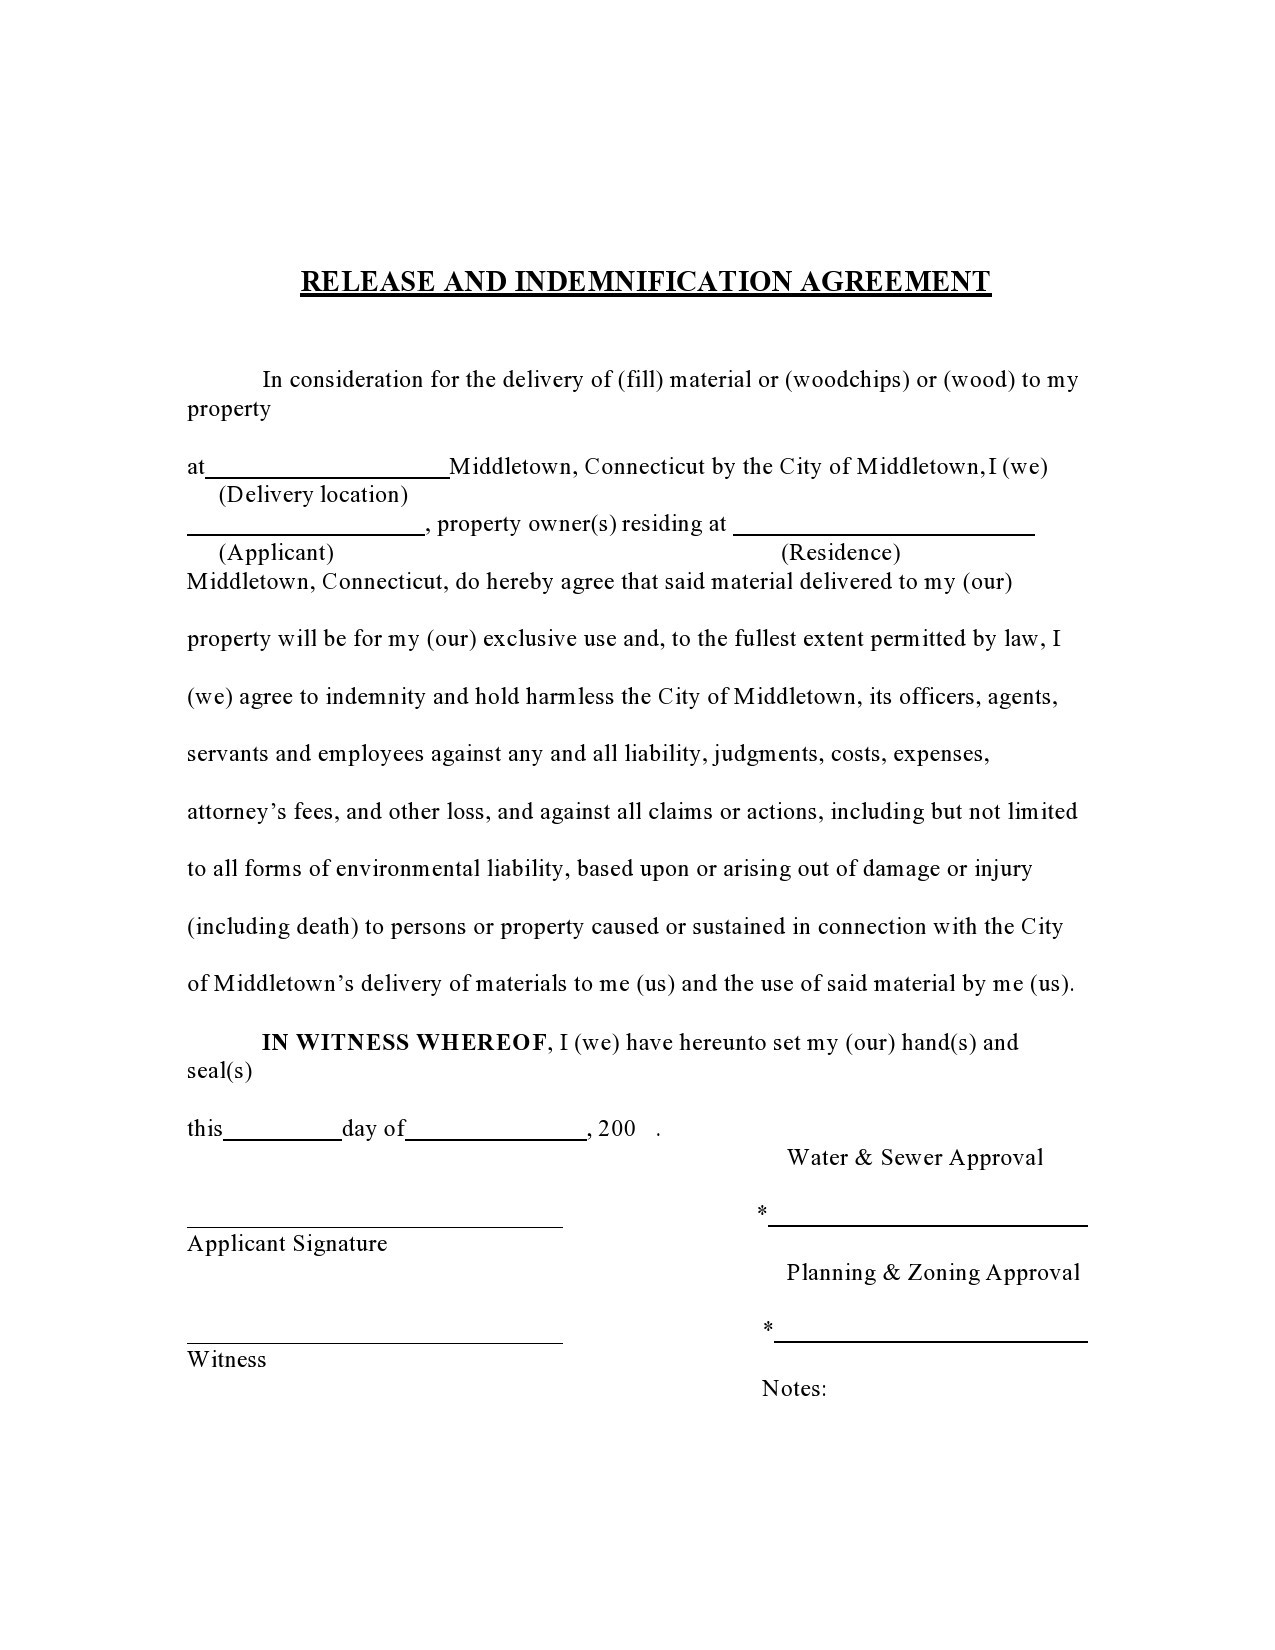 Free indemnification agreement 41